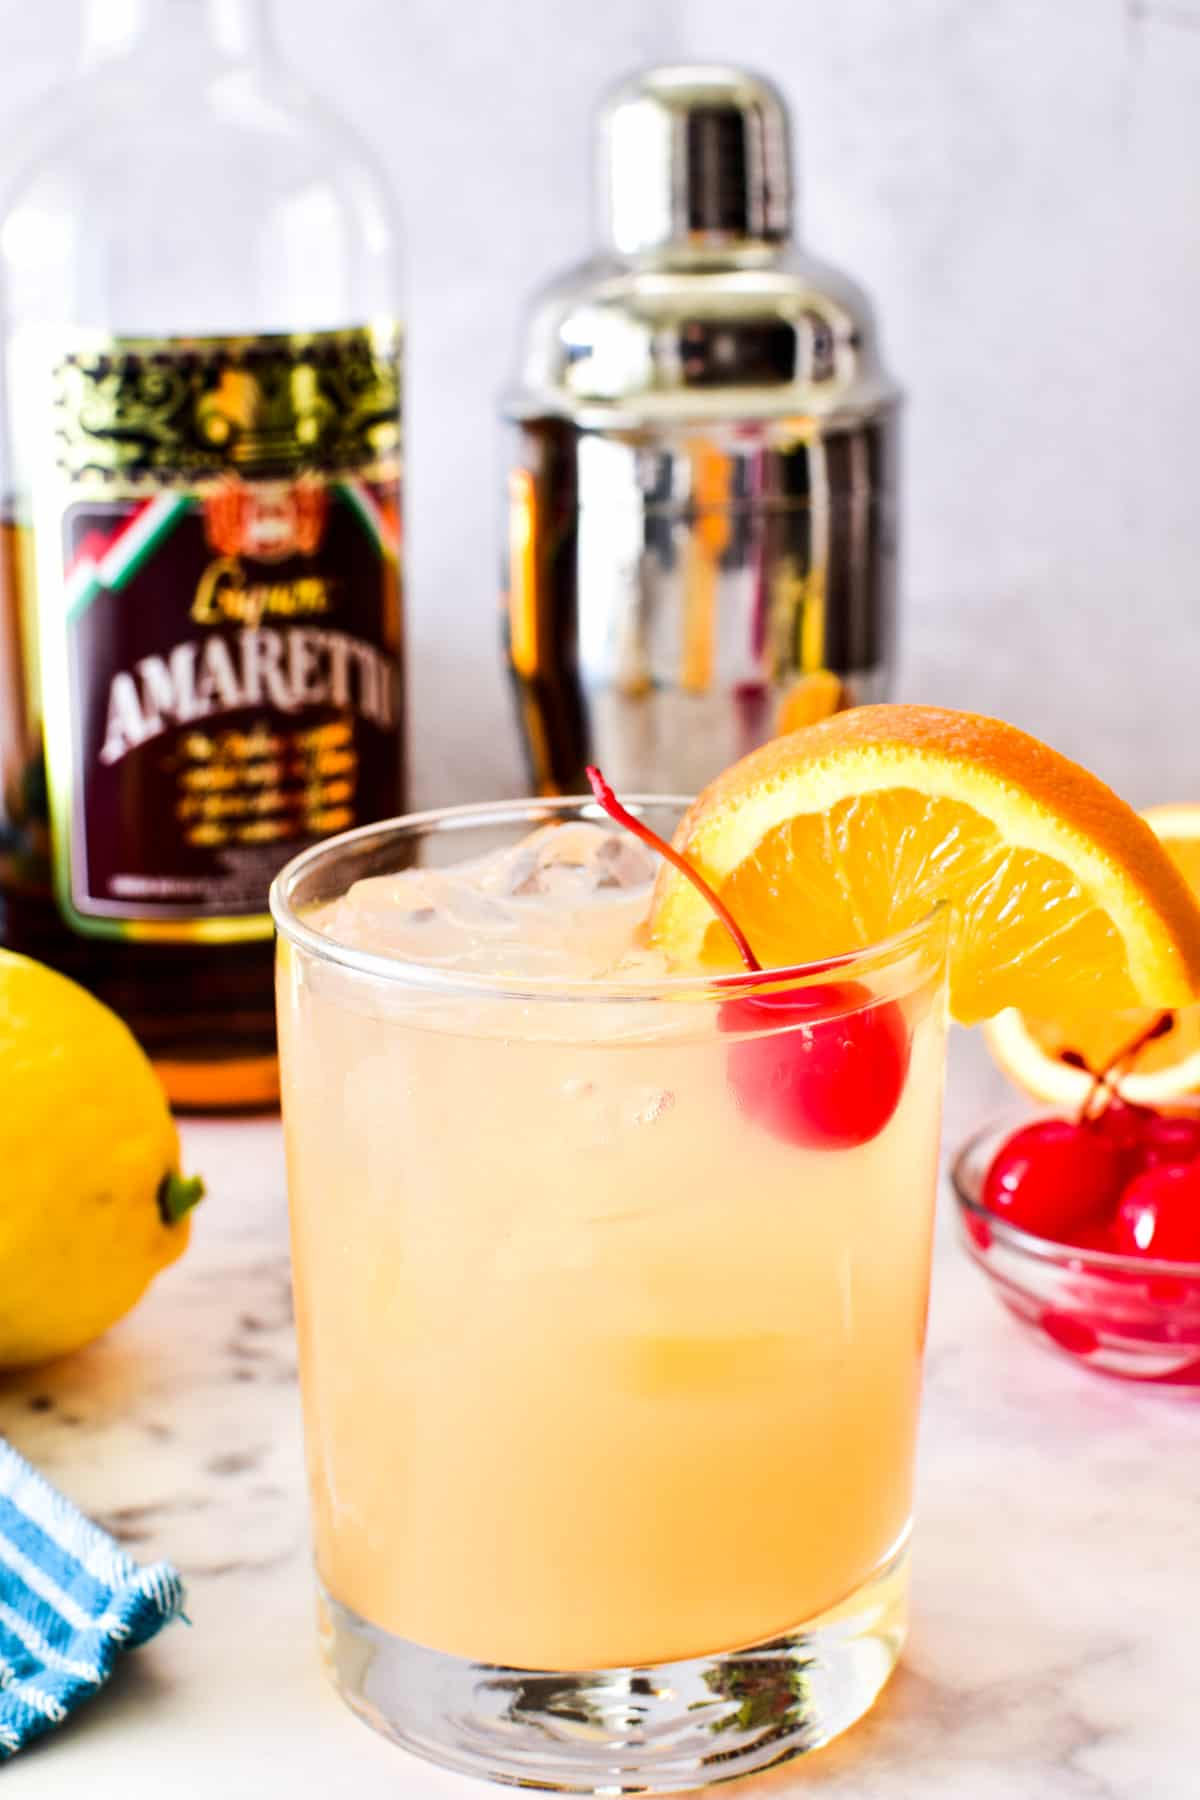 Amaretto Sour in a glass with an orange slice and maraschino cherry